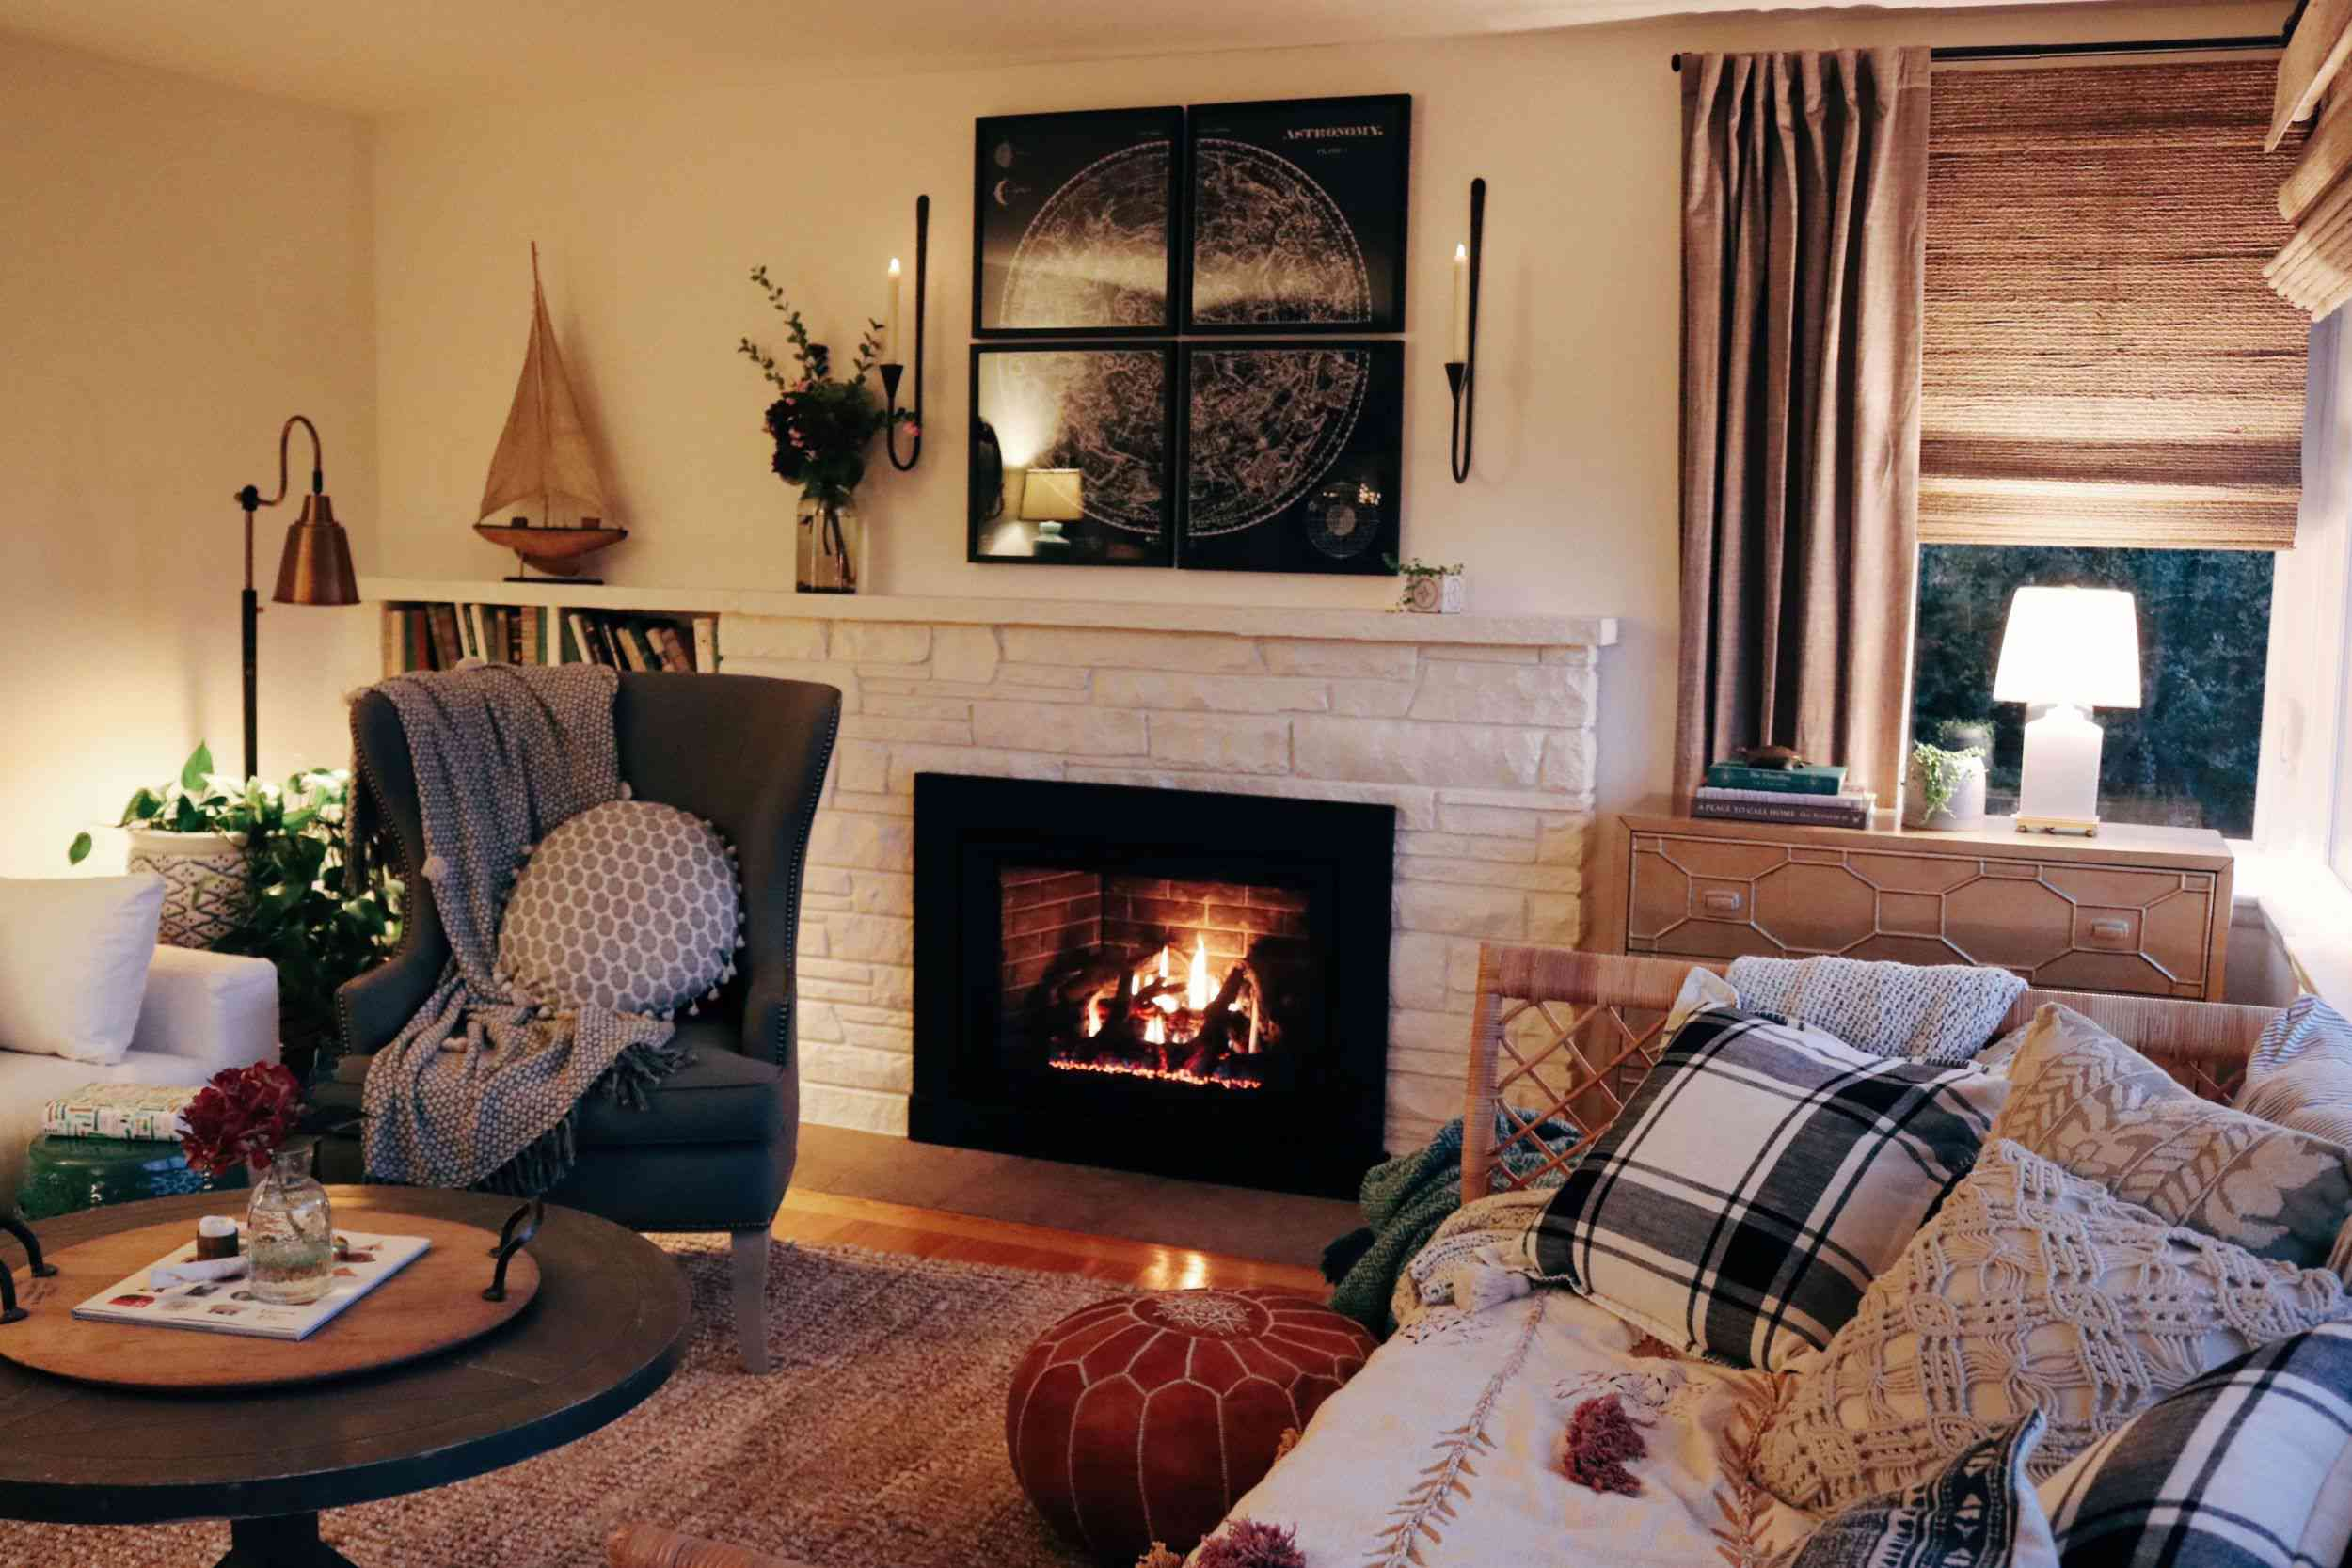 den with fireplace and layered blankets